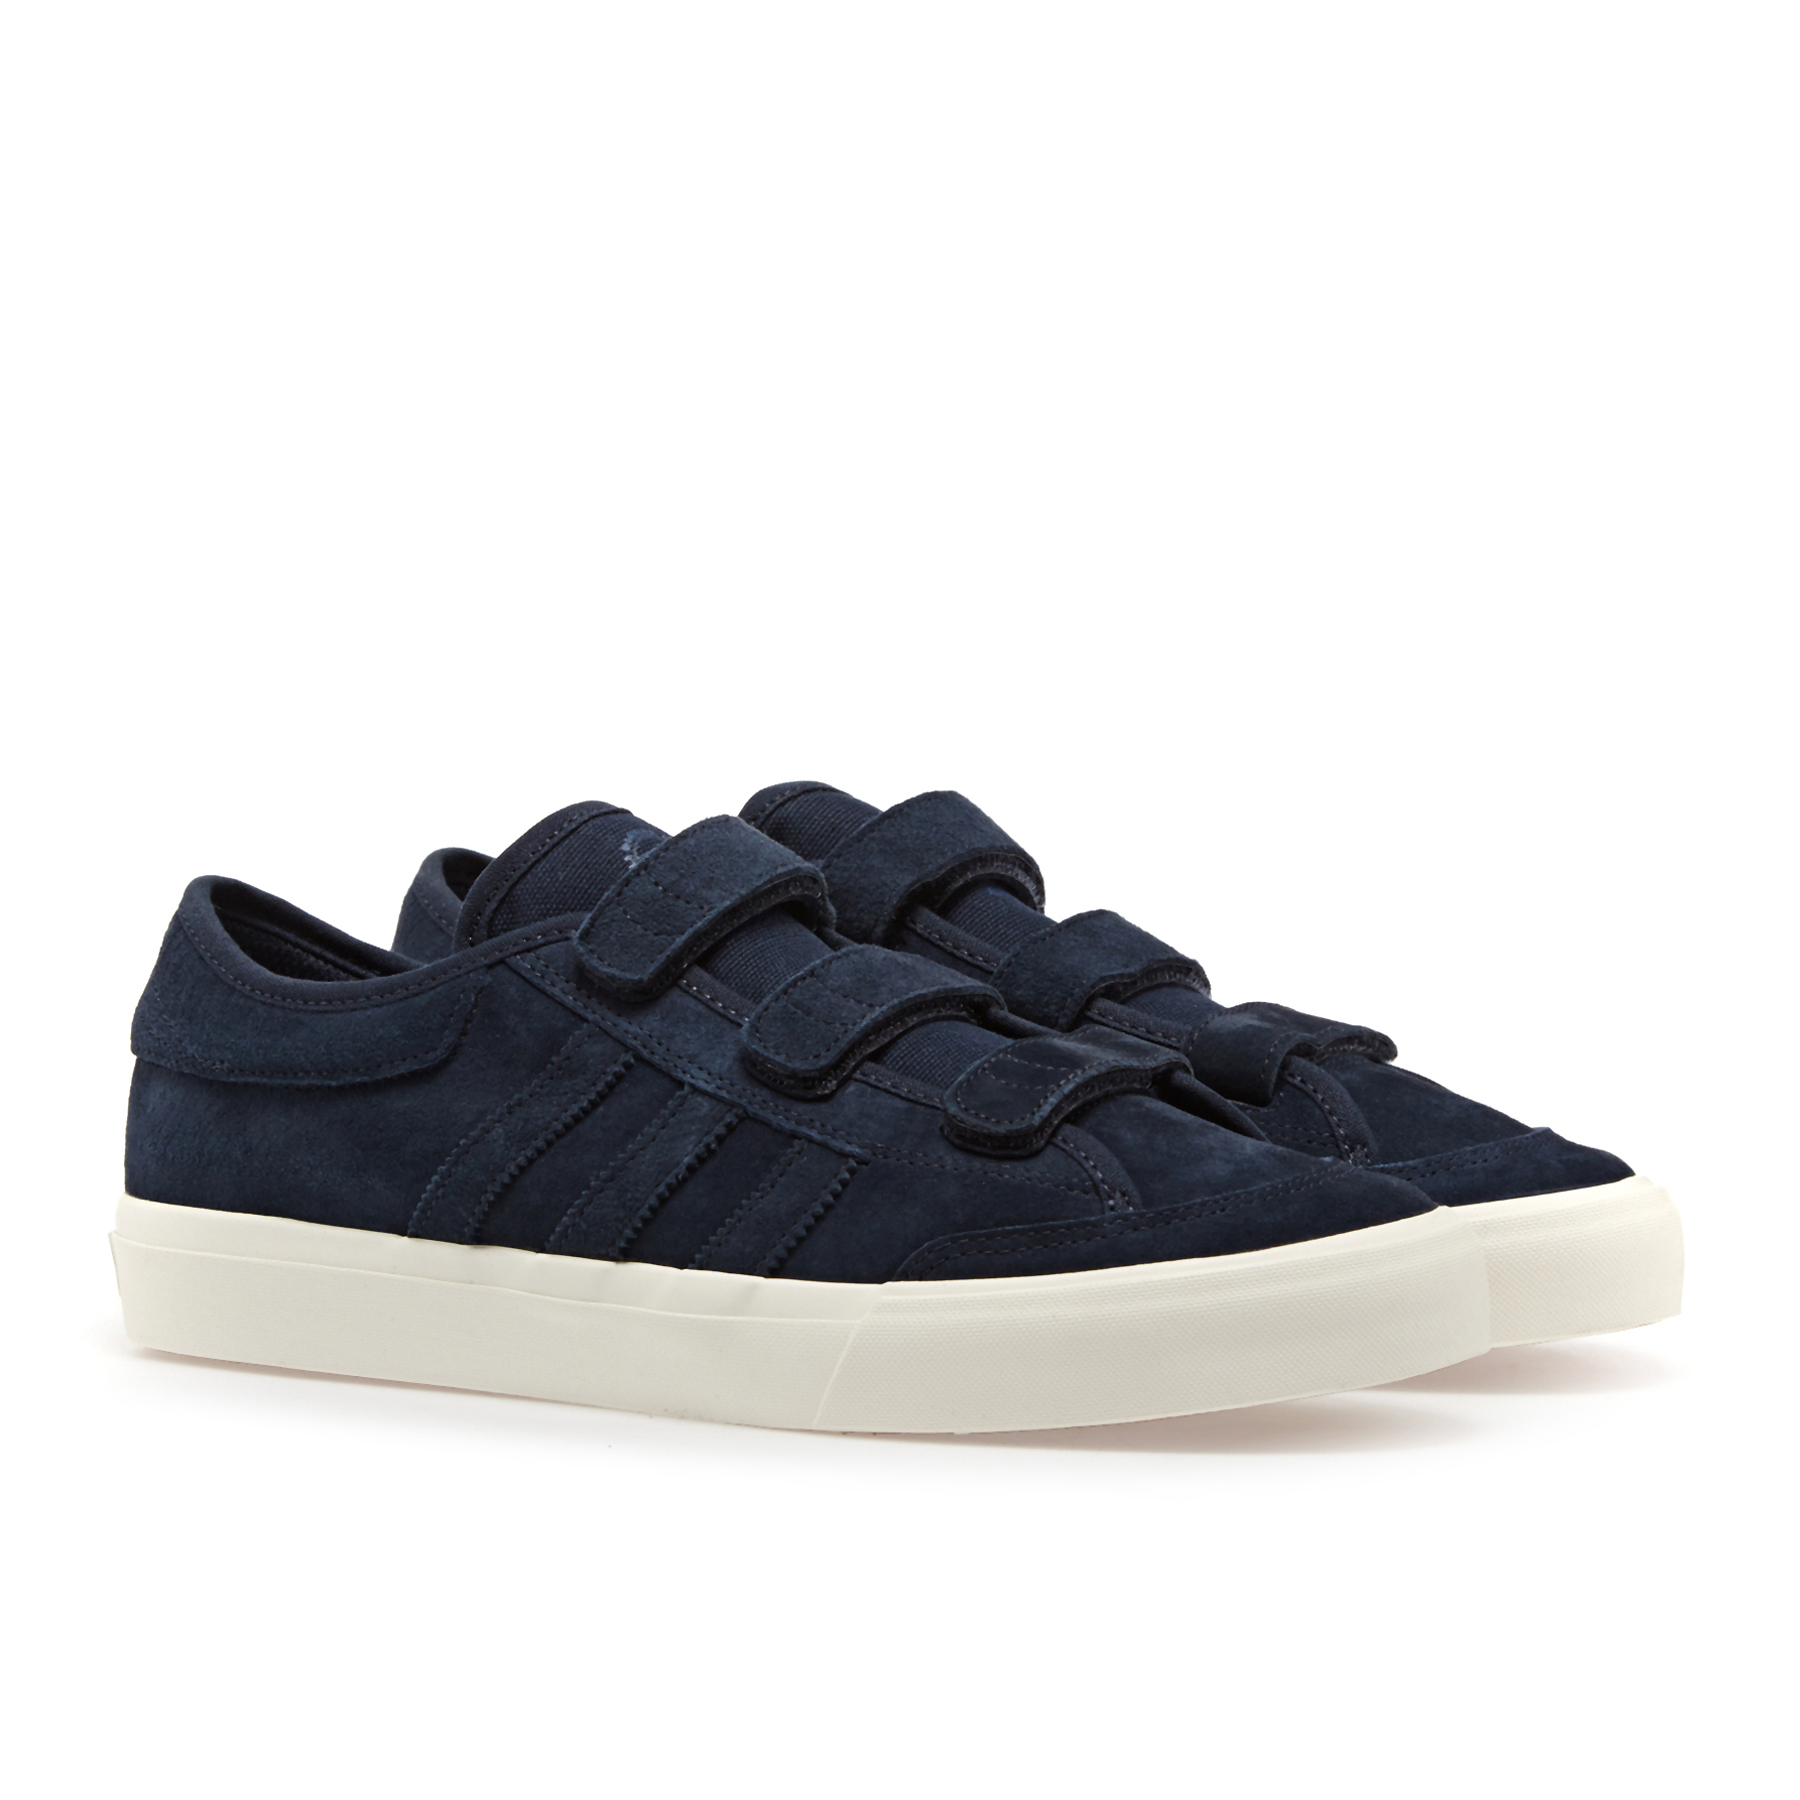 Adidas Matchcourt Cf Shoes | Free Delivery* on All Orders